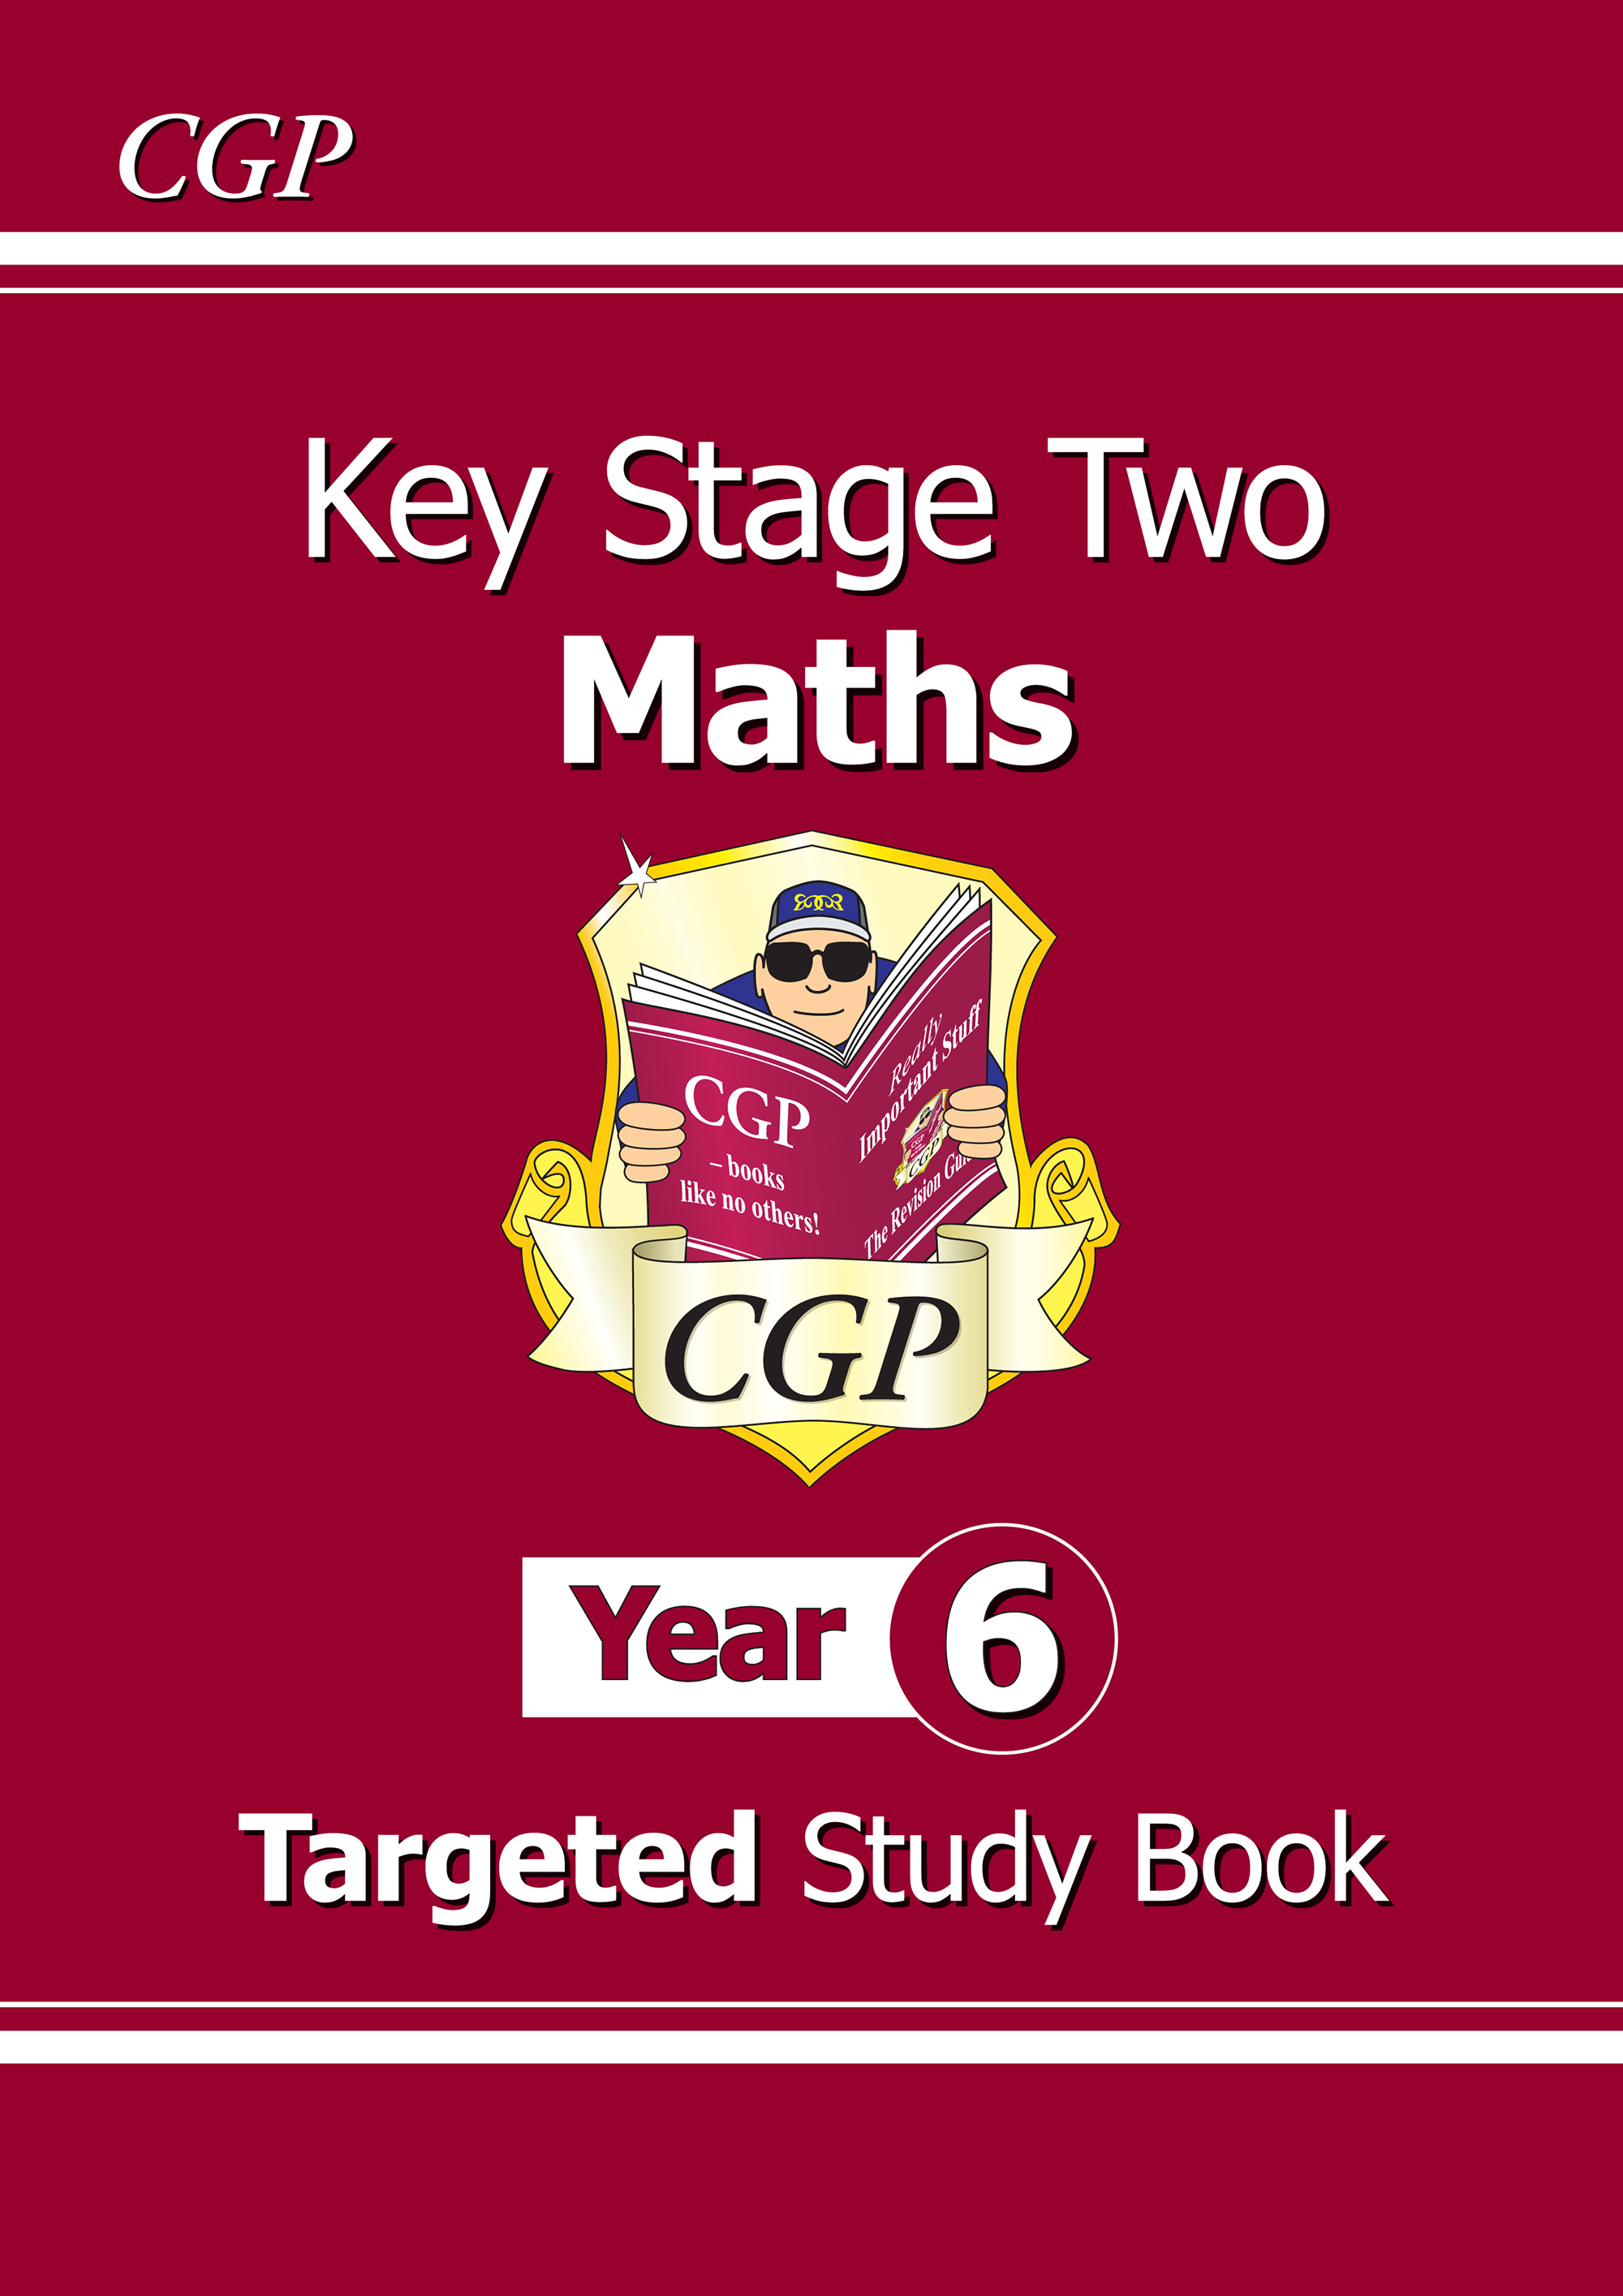 M6R23 - KS2 Maths Targeted Study Book - Year 6